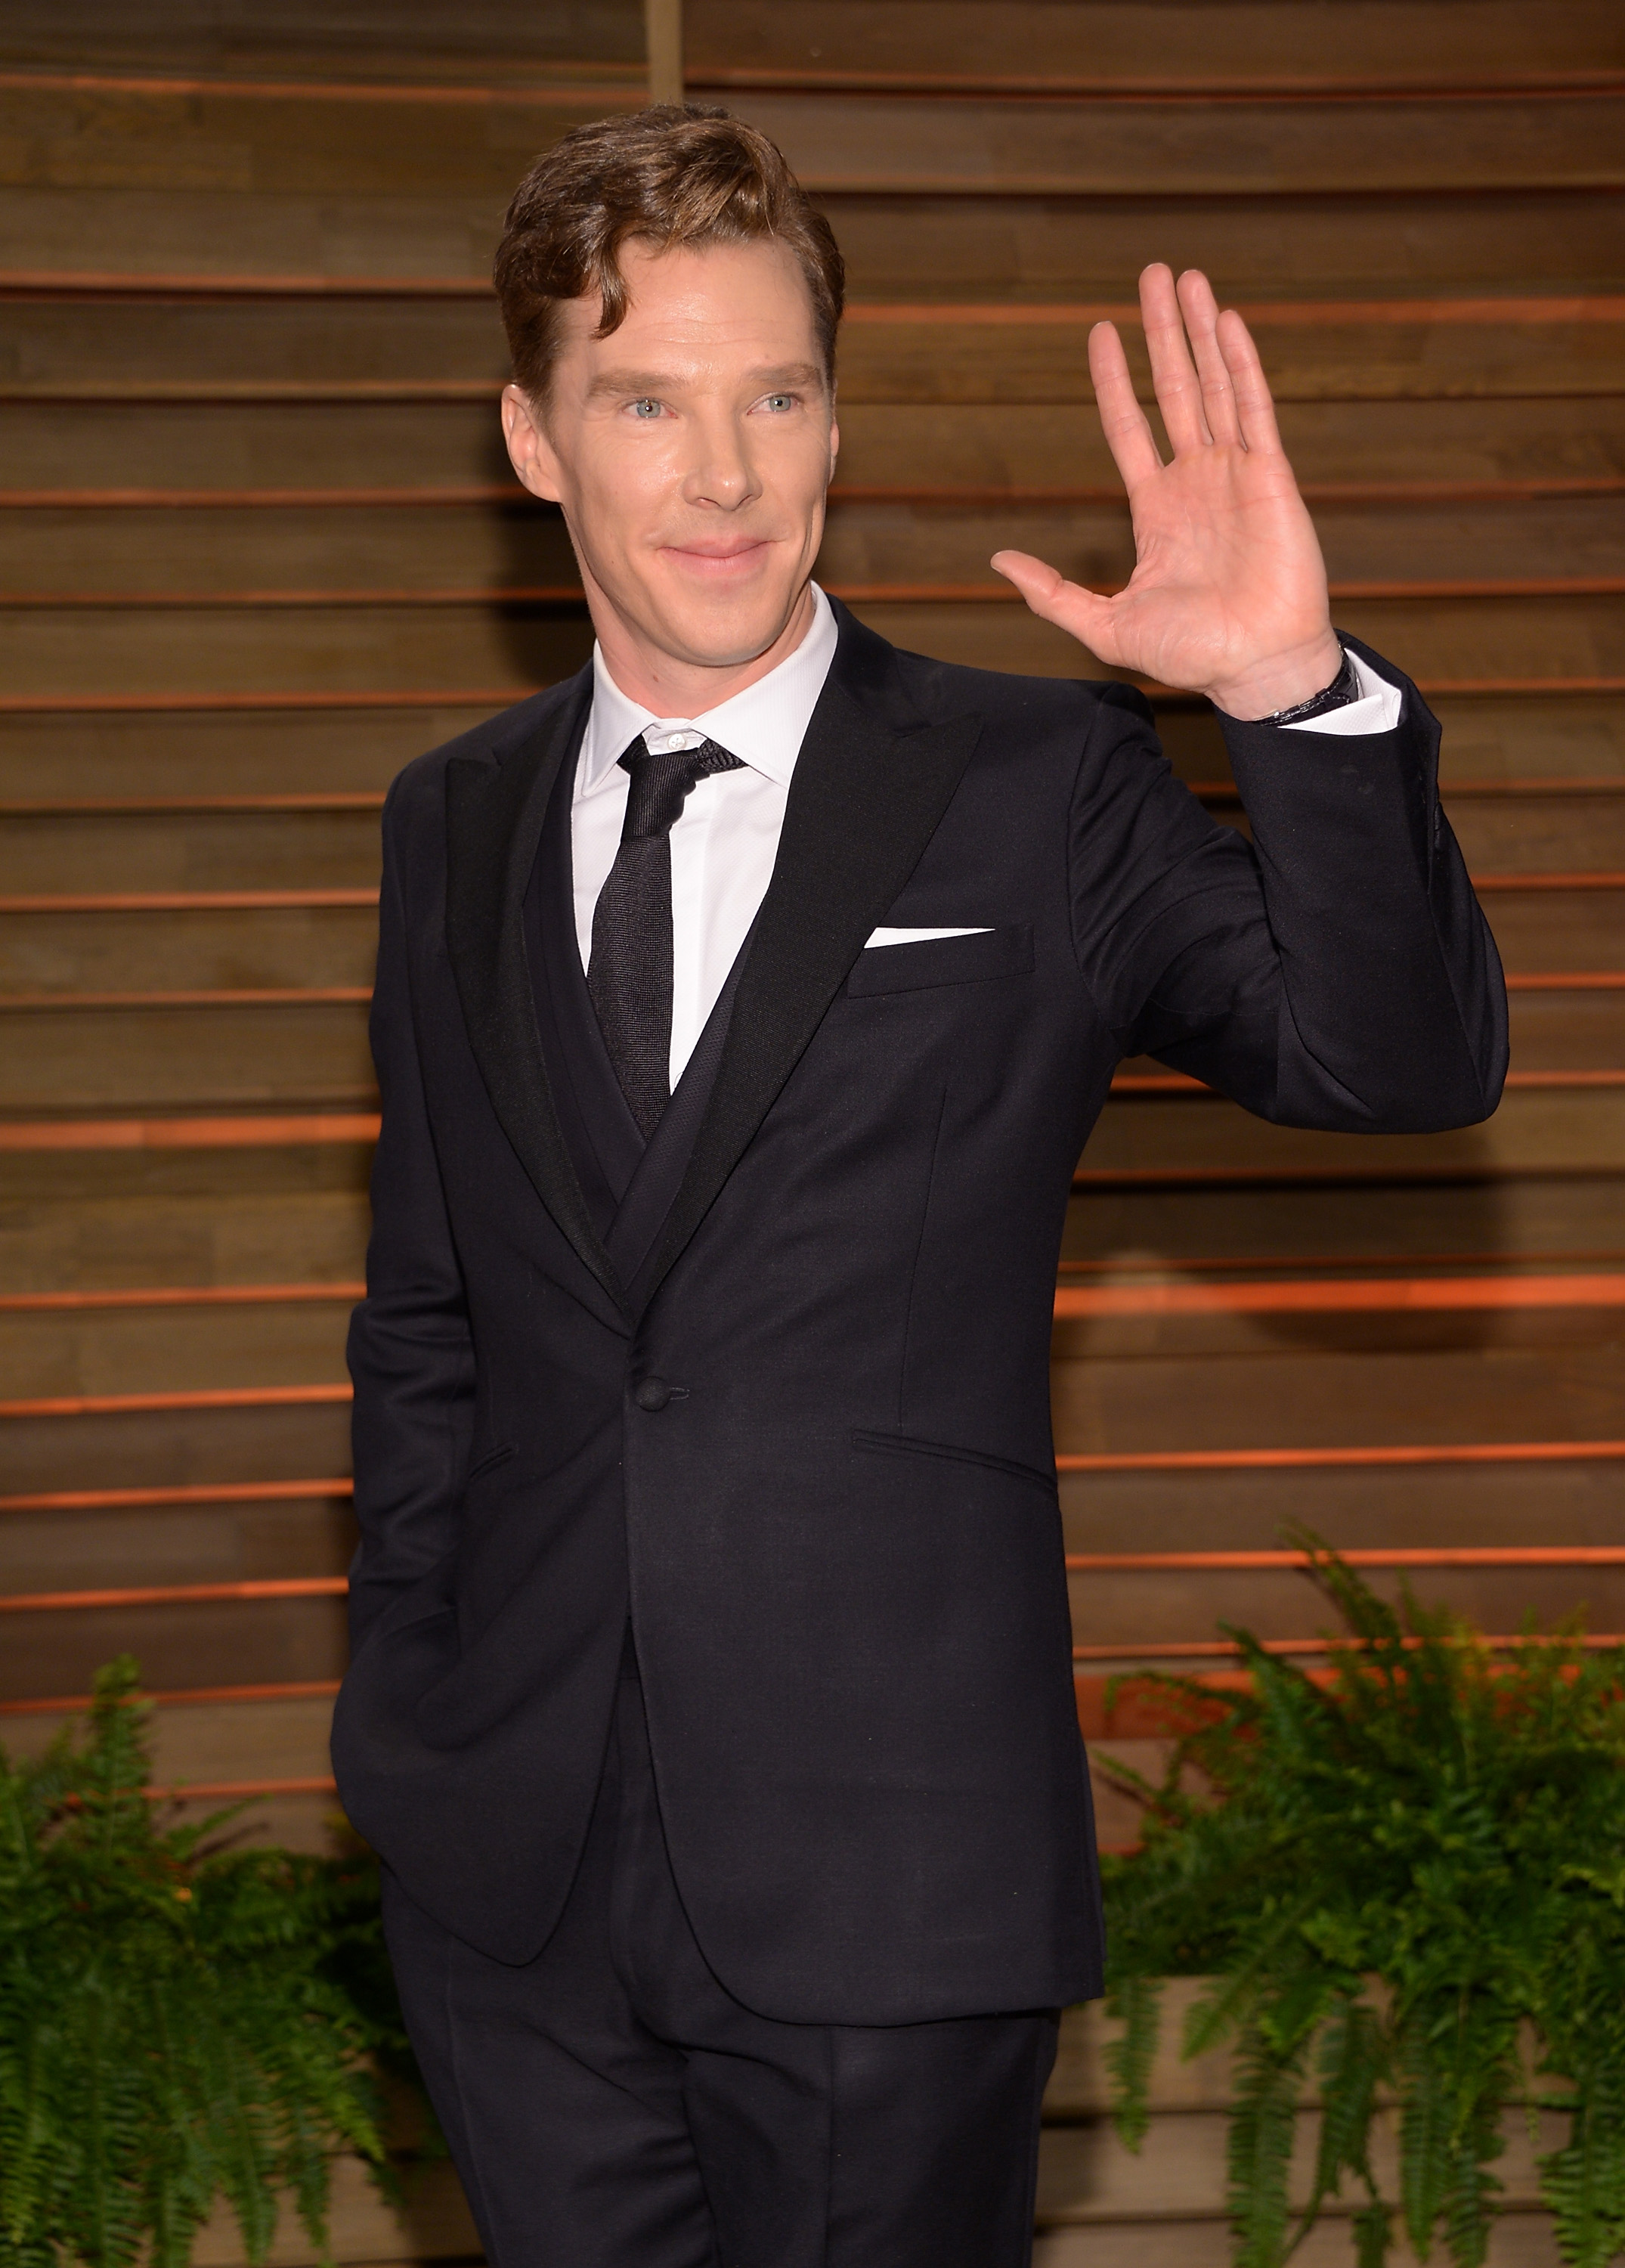 Actor Benedict Cumberbatch attends the 2014 Vanity Fair Oscar Party on Sunday, March 2, 2014, in West Hollywood, Calif. (Photo by Evan Agostini/Invision/AP)